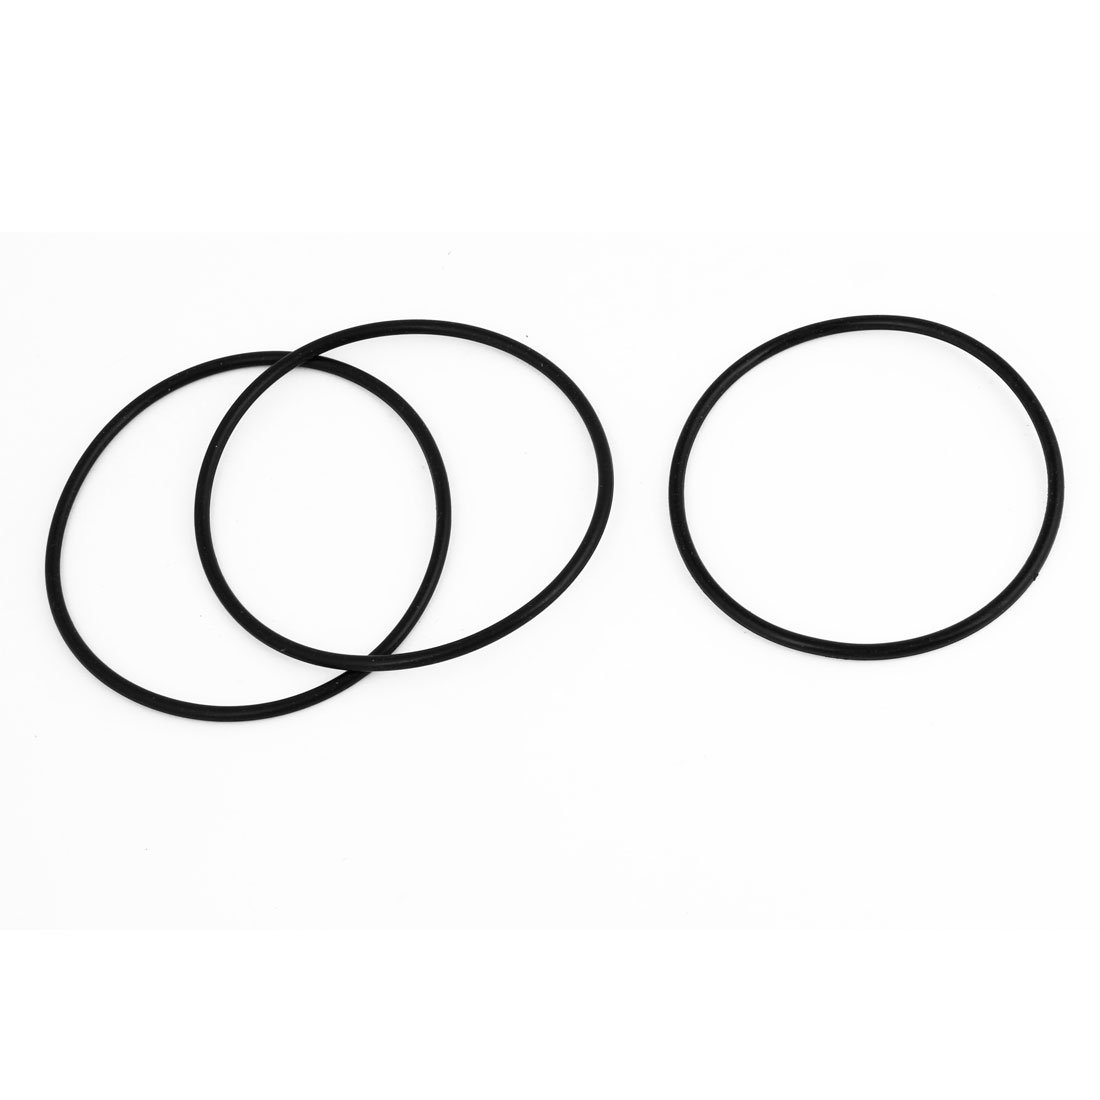 "3 Pcs Replacement 2.6"" External Dia Industrial Rubber O Rings Seals Black"